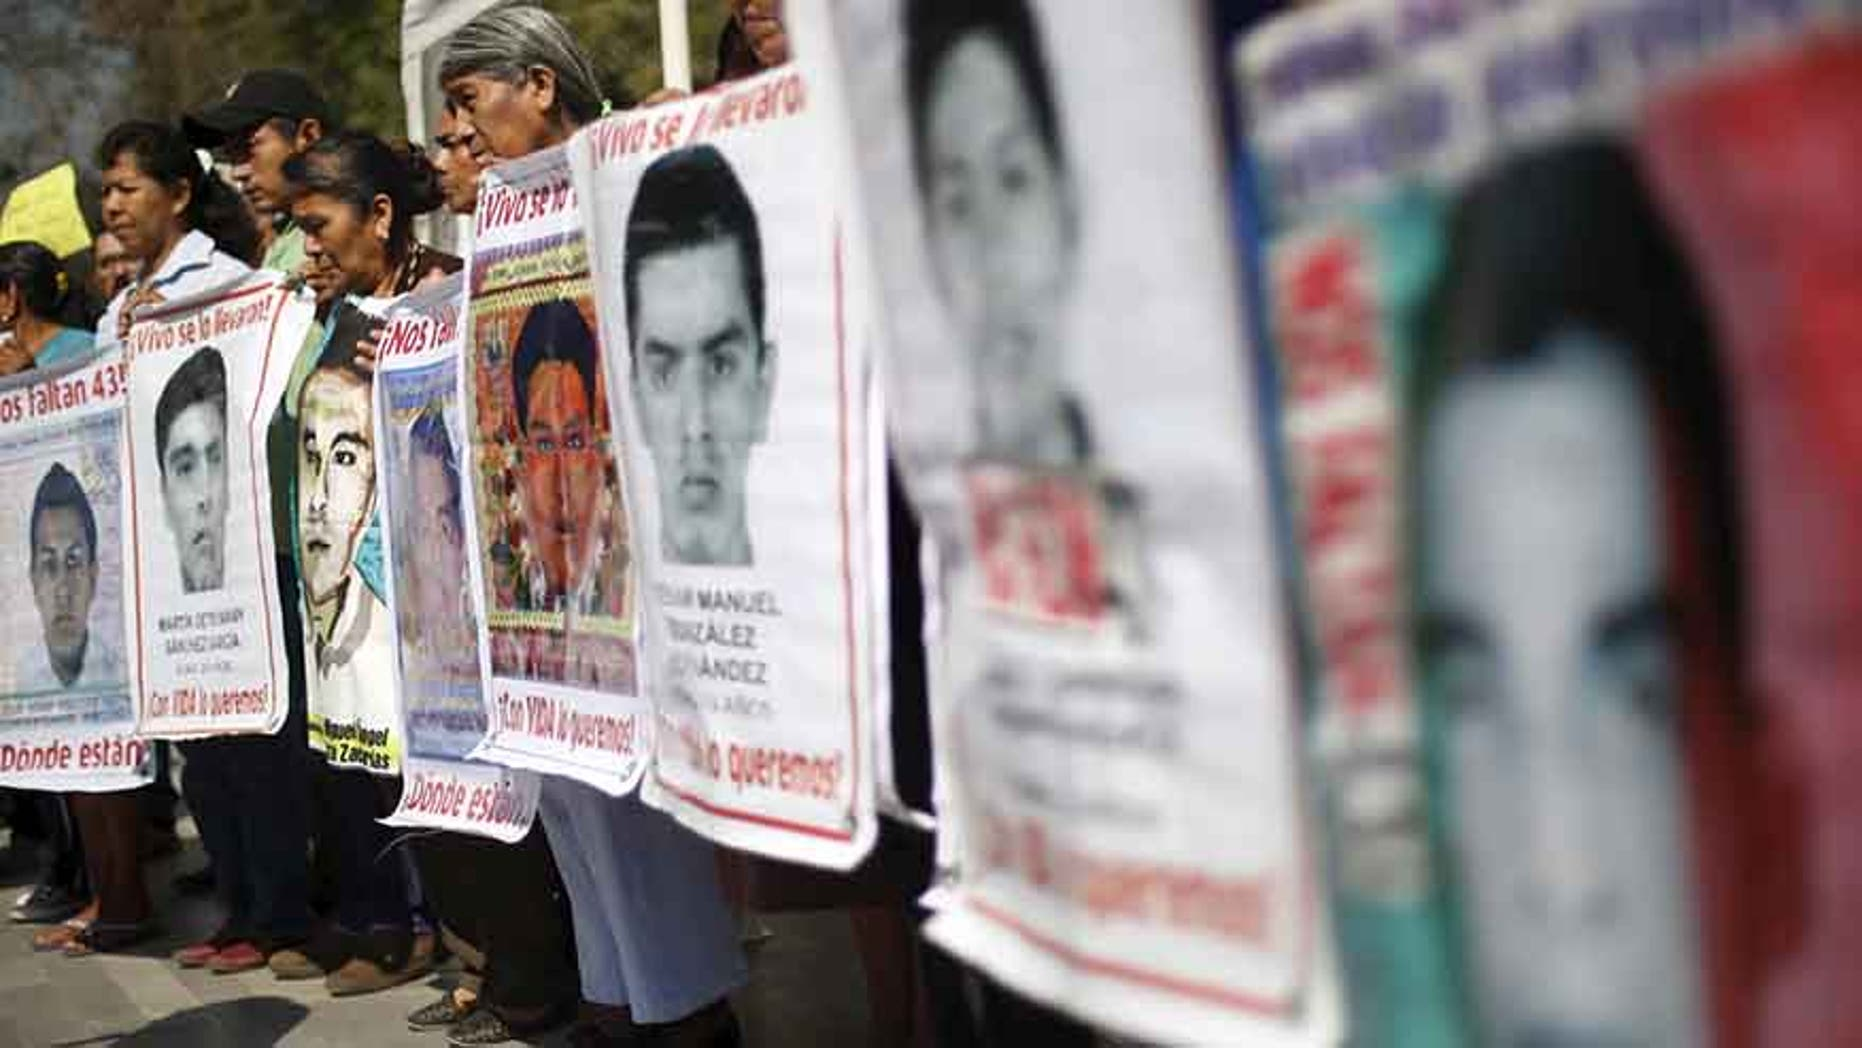 Relatives of the 43 students missing from Ayotzinapa take part in a demonstration in Mexico City, on Feb. 22, 2016.